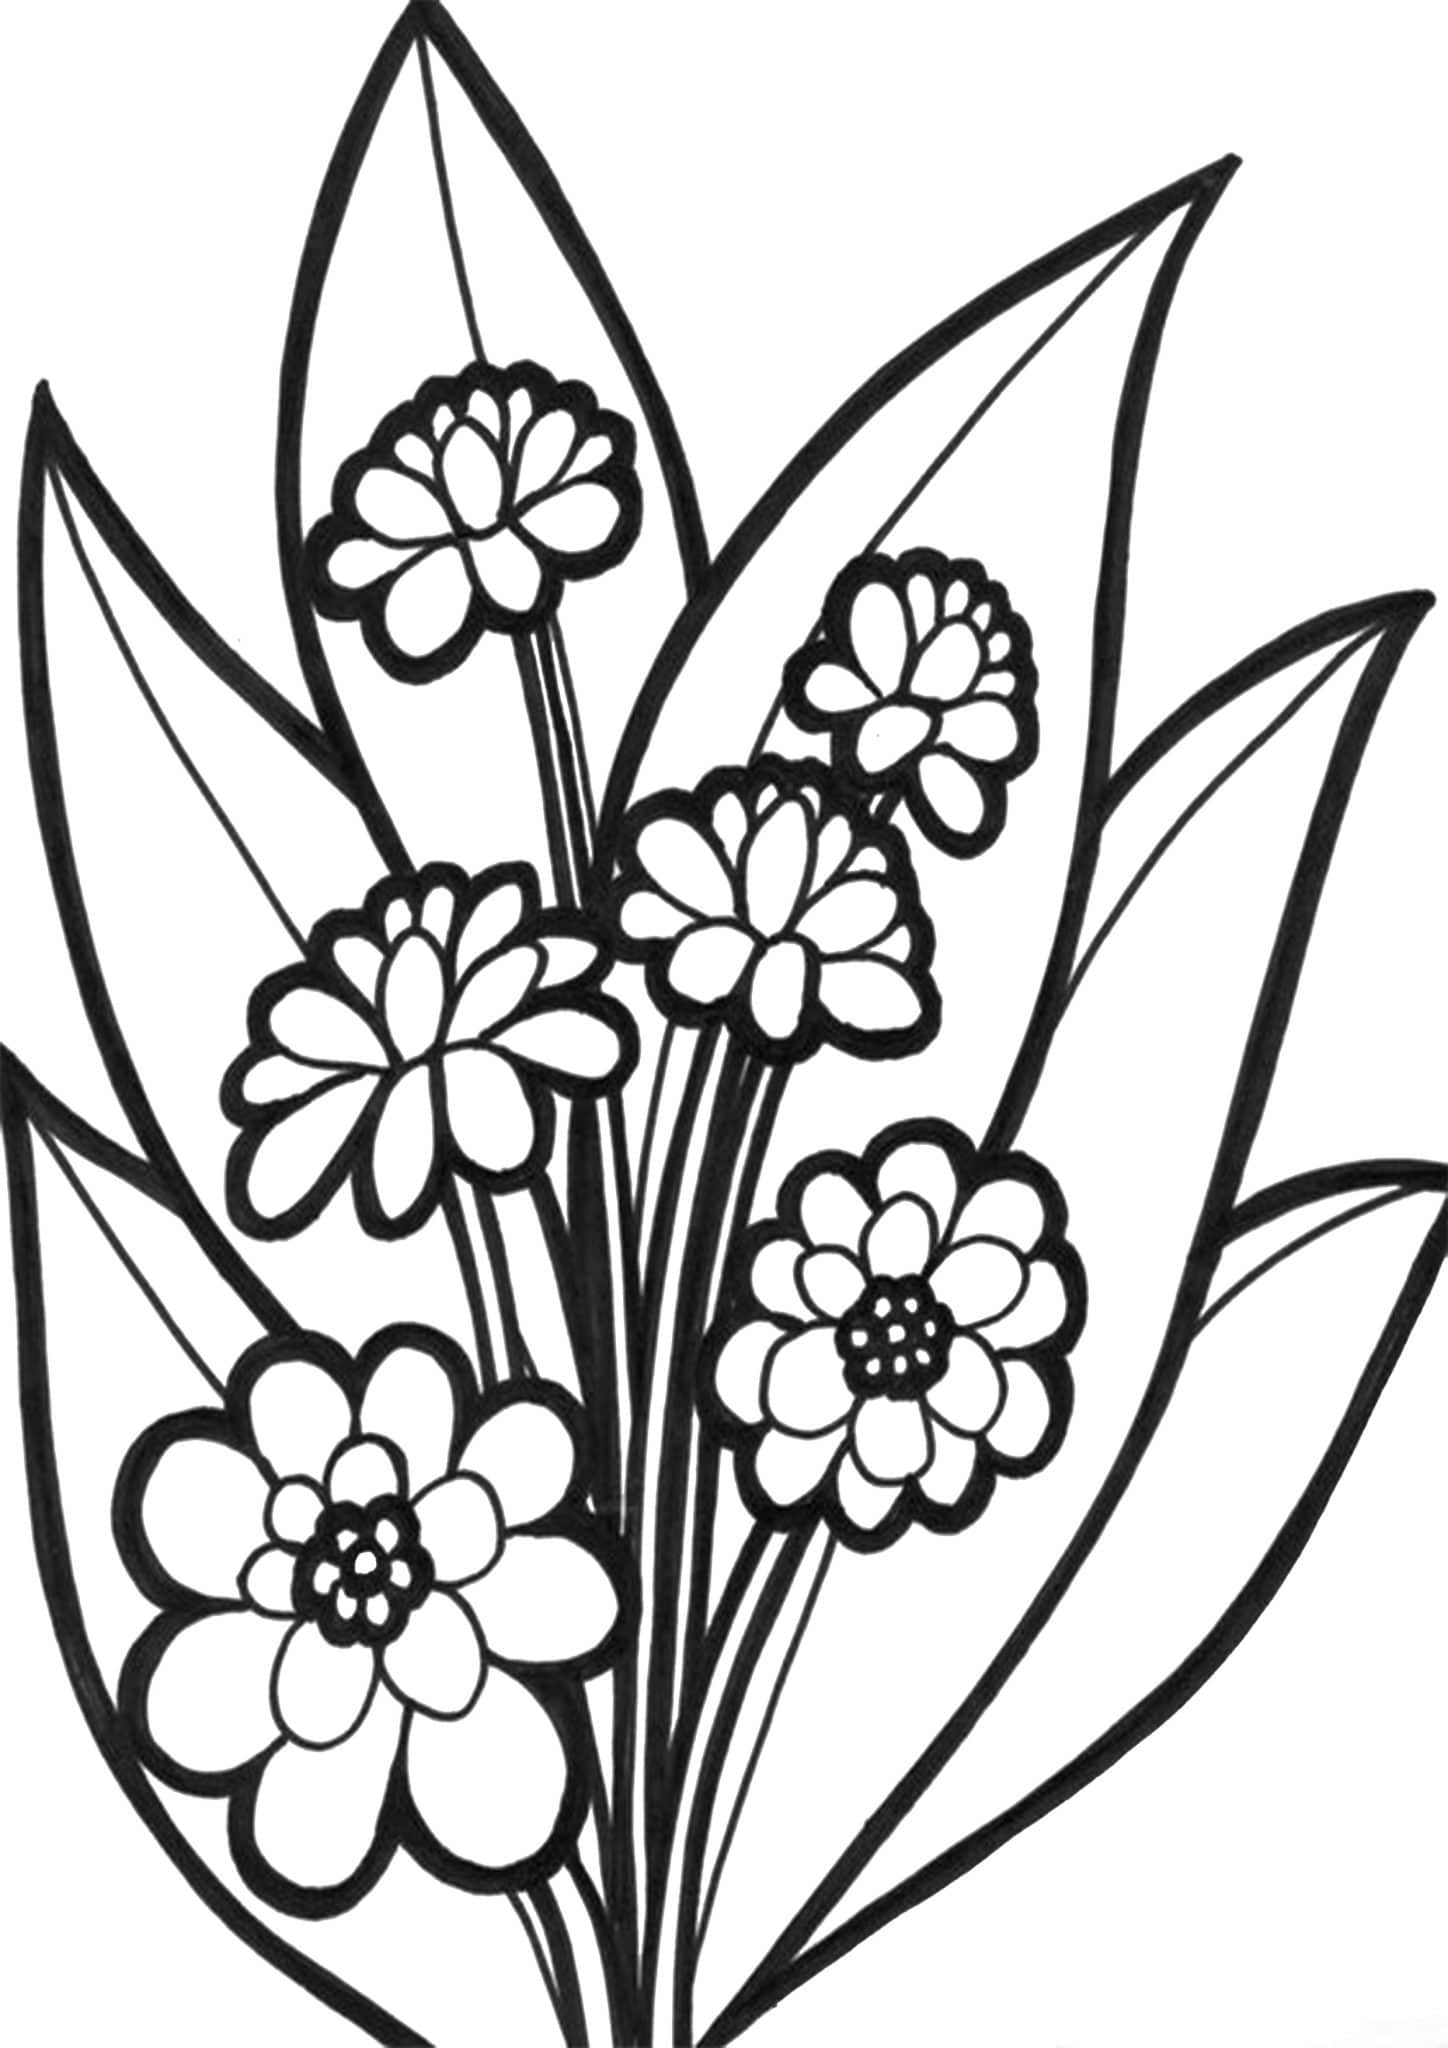 coloring image of a flower flower coloring printables for kids of coloring a image flower